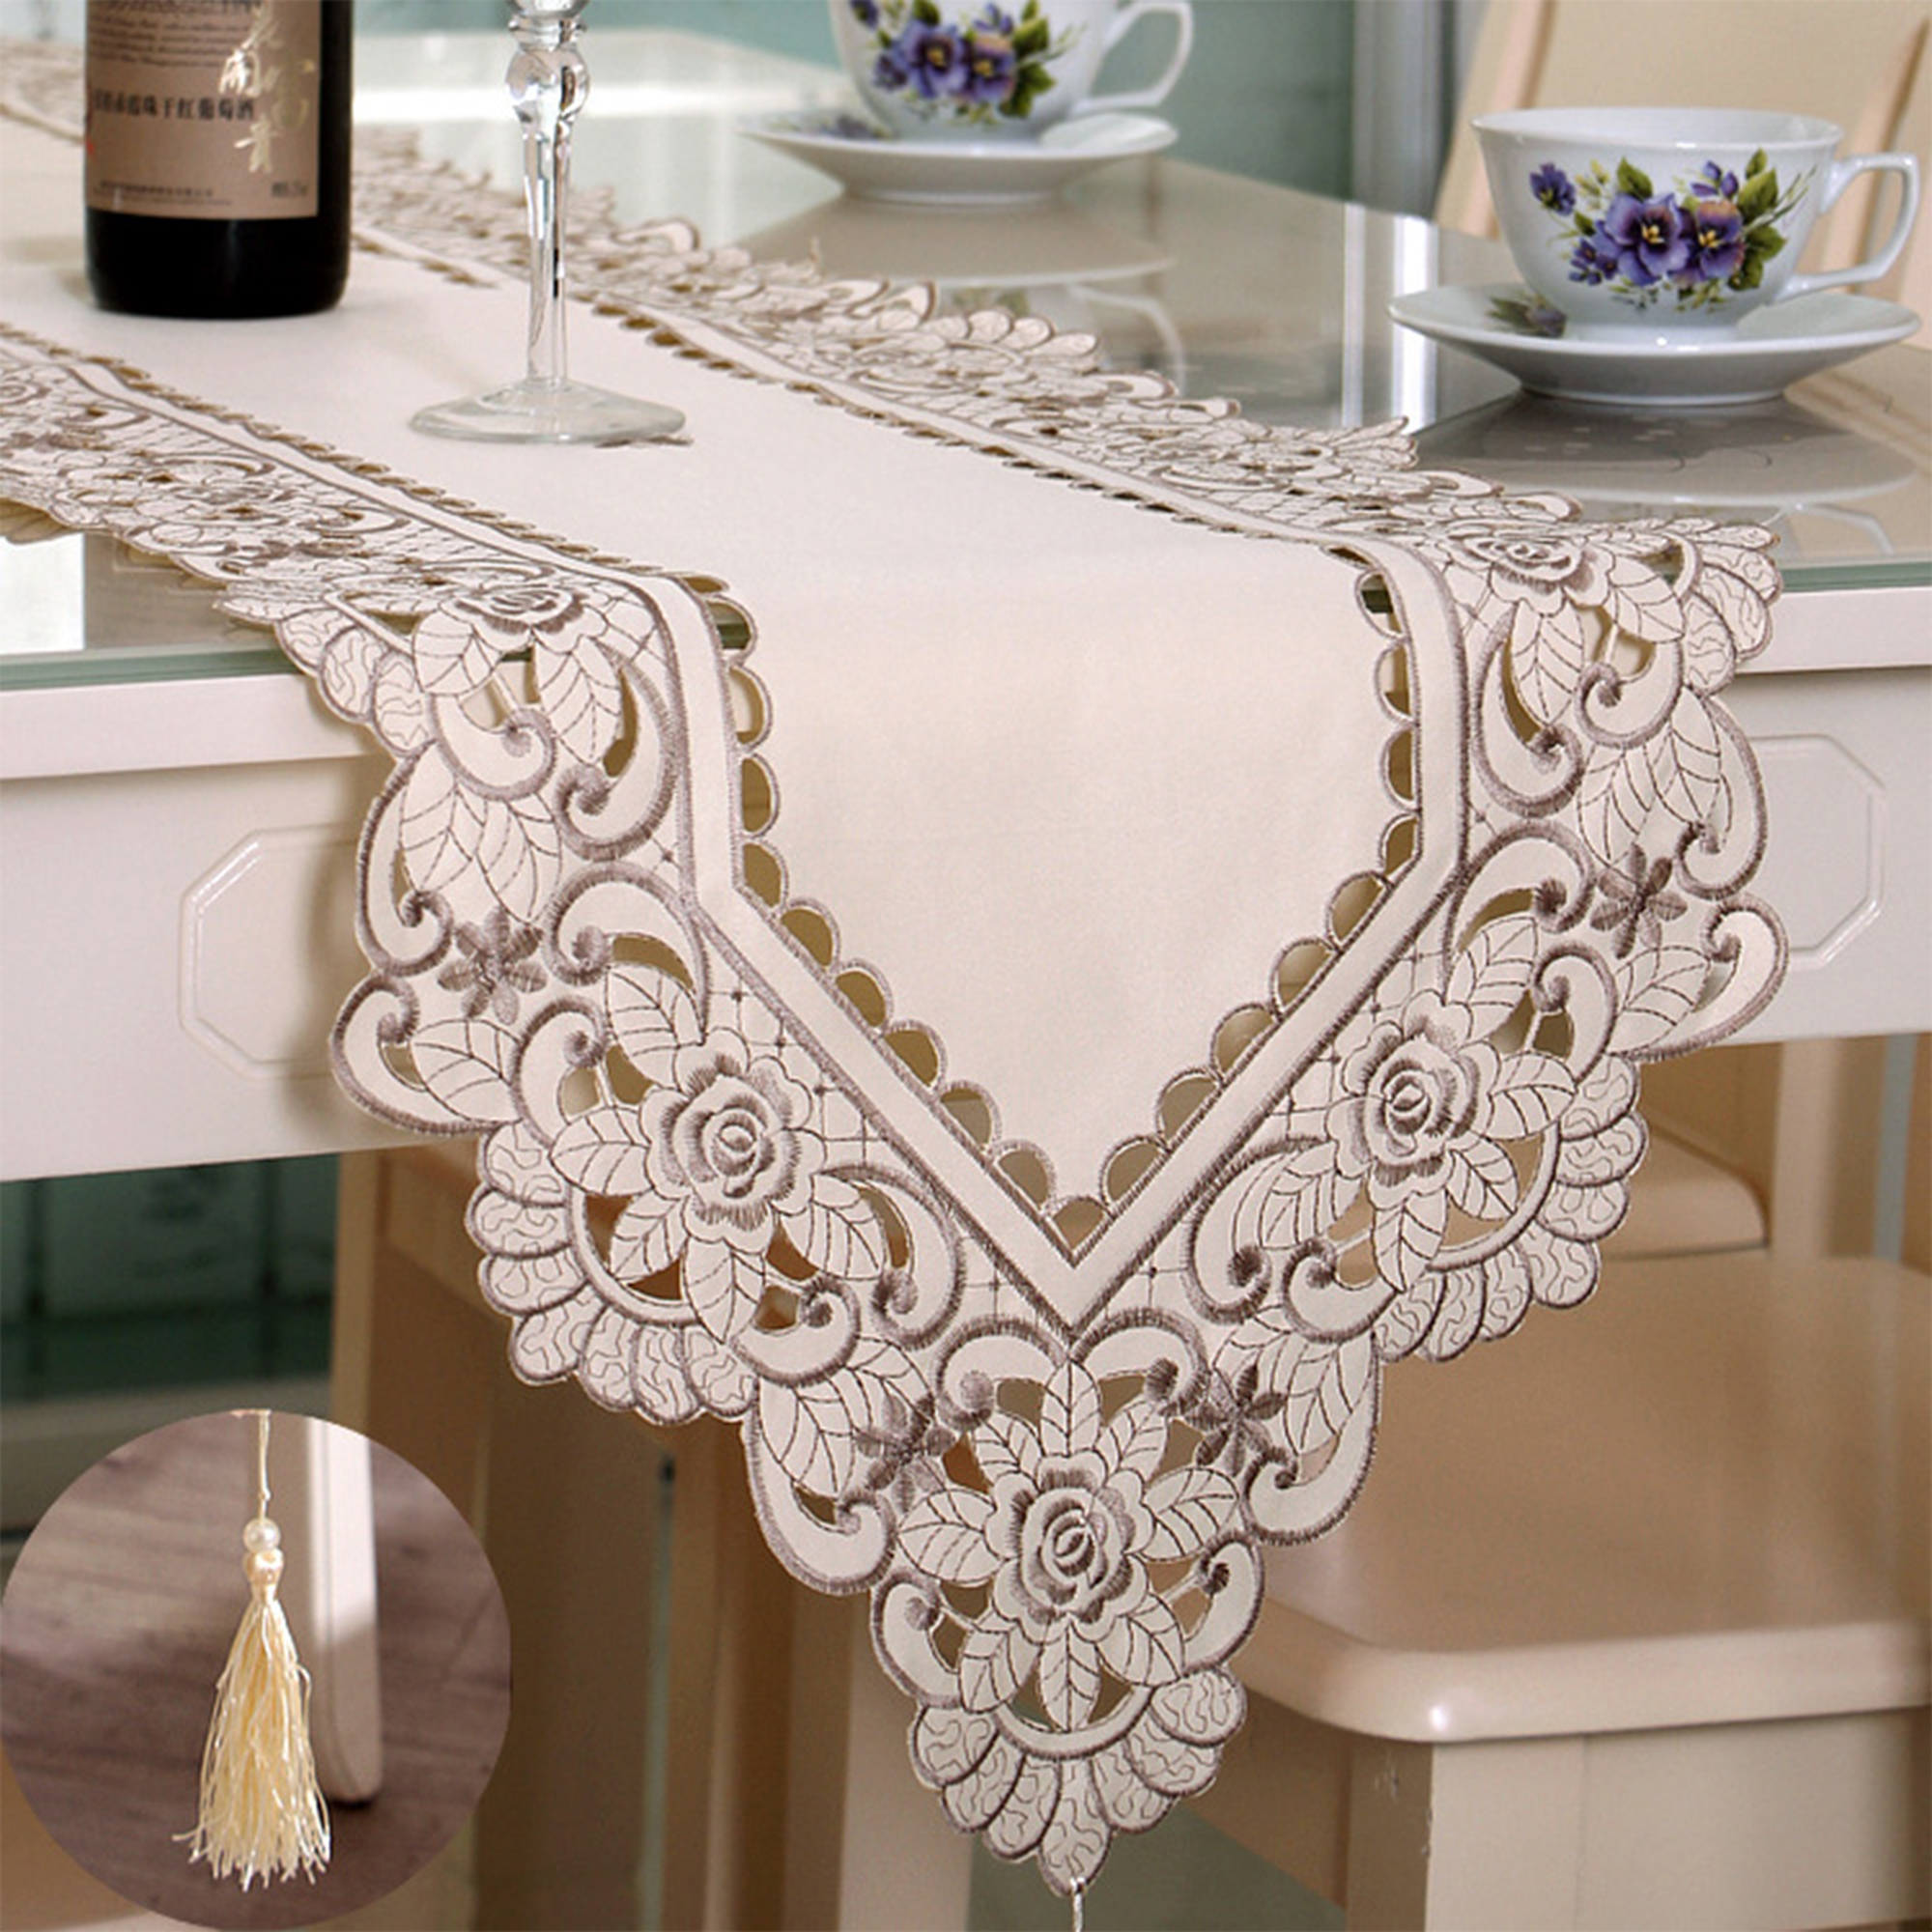 Vintage Table Runner Elegant Runner Cabinet Room Dining Room Table Decoration Ebay